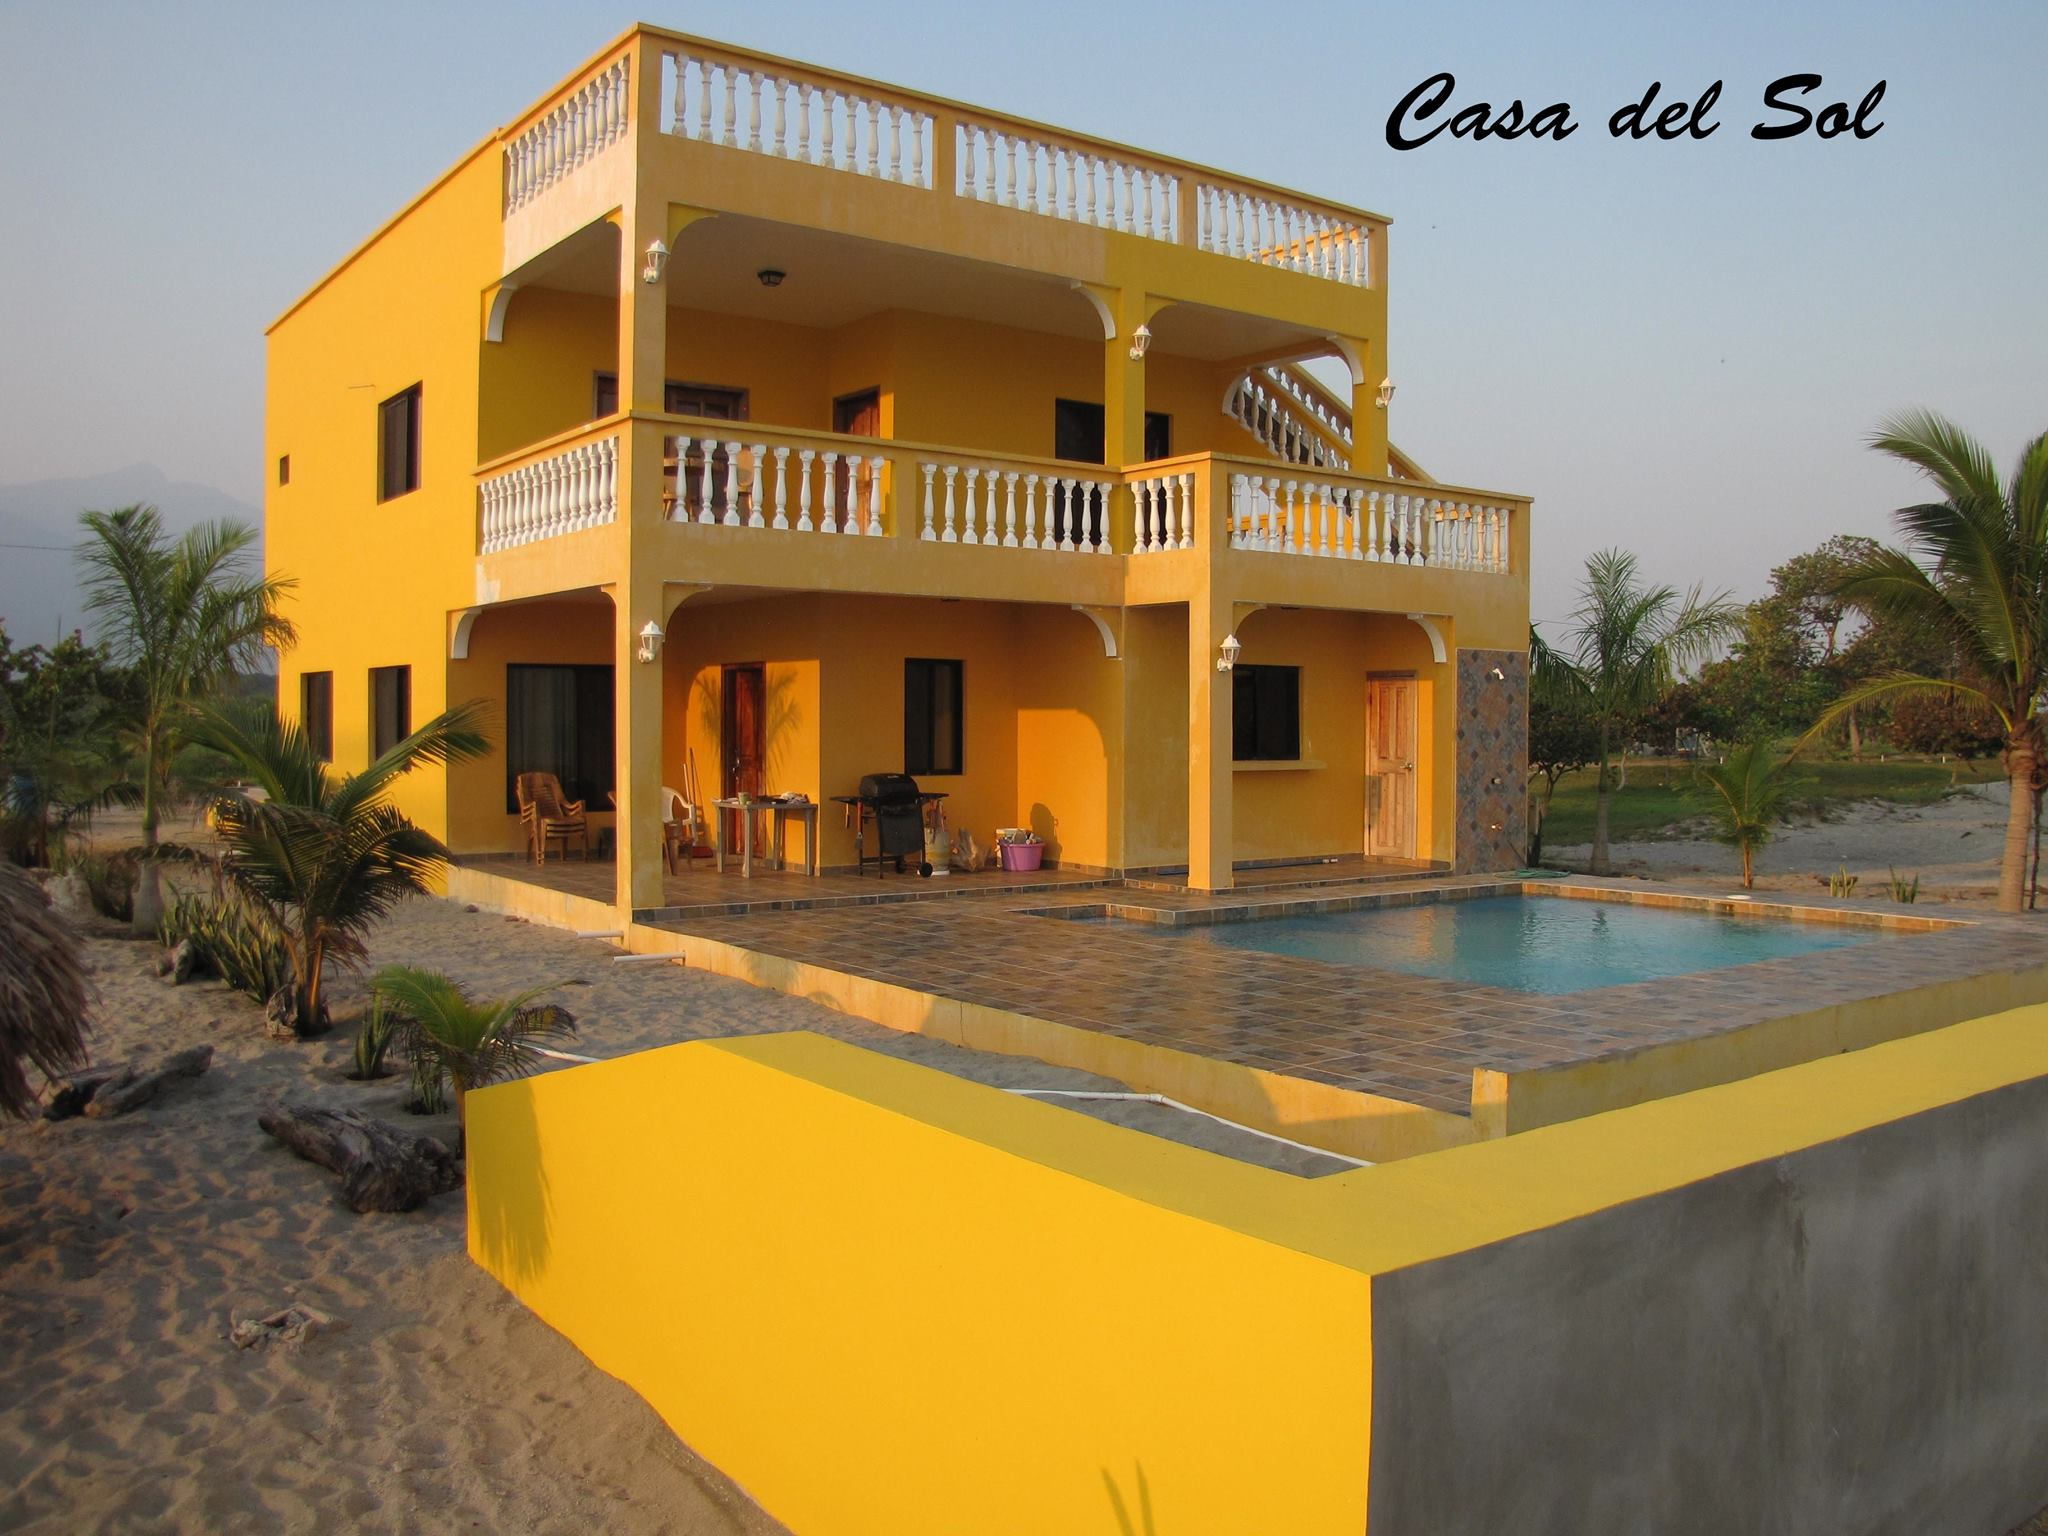 Casa Del Sol from Playa Vida Honduras